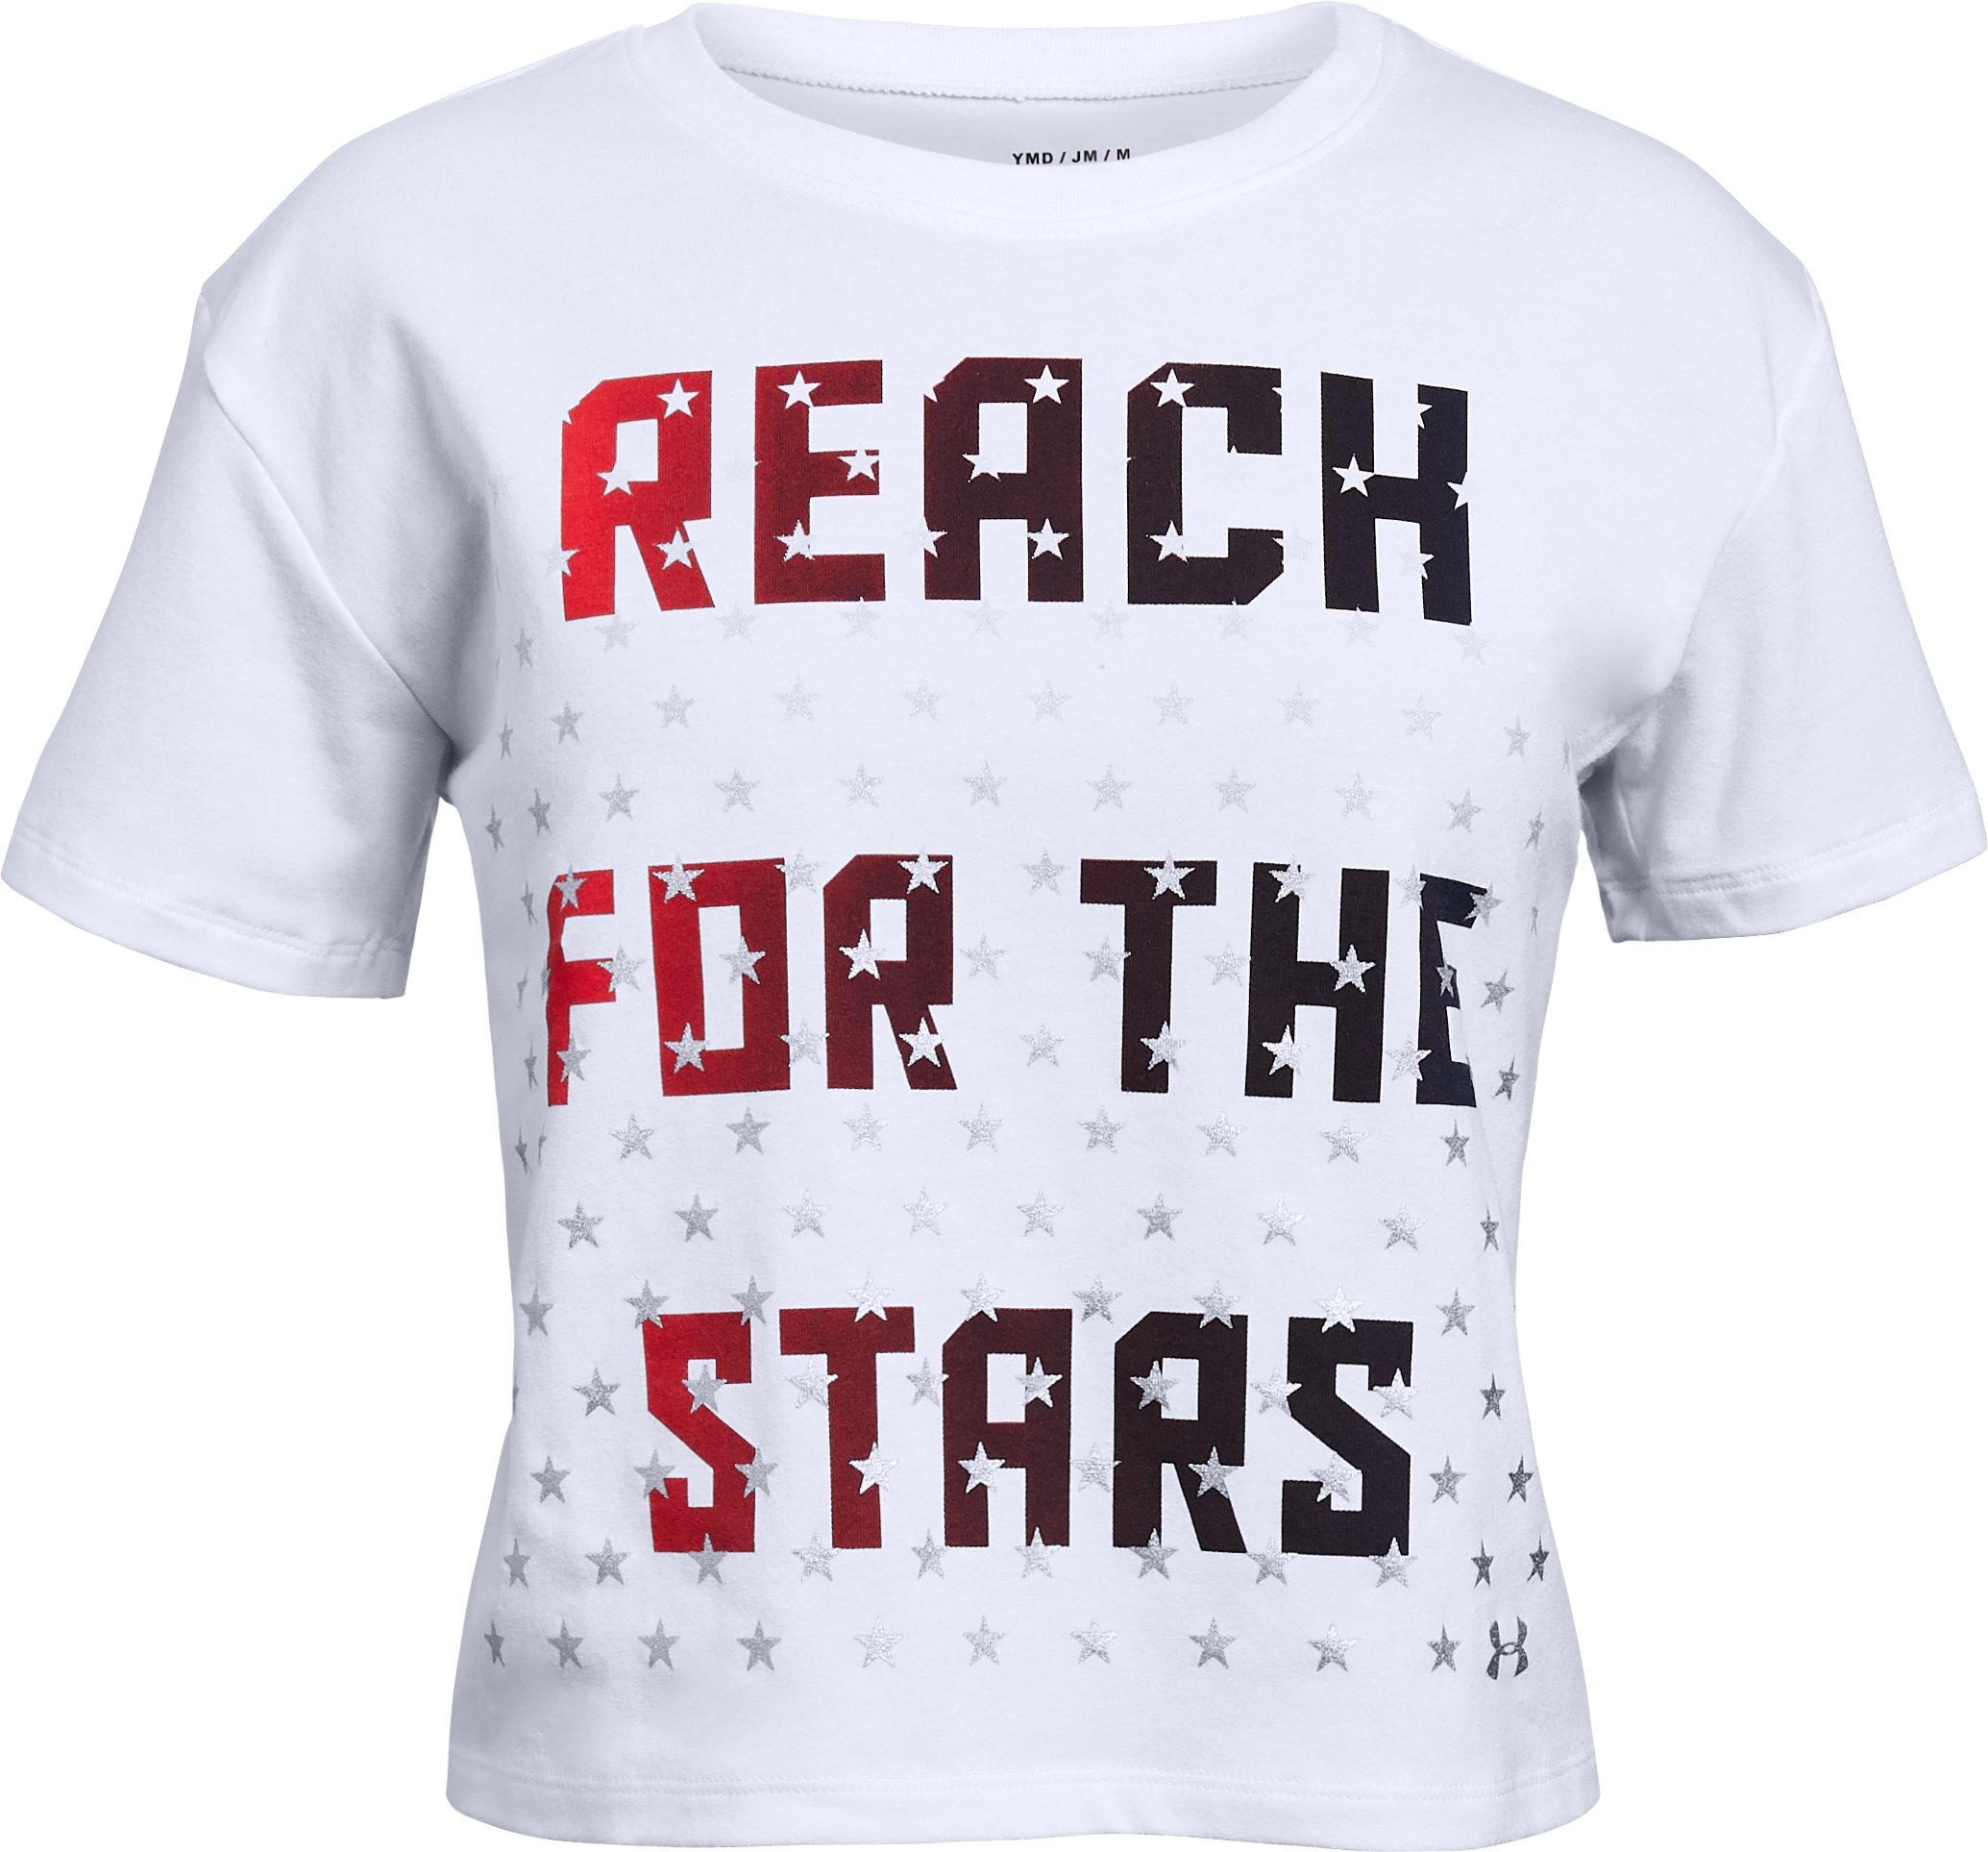 stars tshirts Girls' UA USA Reach Stars T-Shirt Nice shirt!!...I purchase this T-shirt for my granddaughter it fit more like a crop top T-shirt but it she loved it so comfortable I thought was my little small , per se but girls these days like that stuff...Really Comfortable